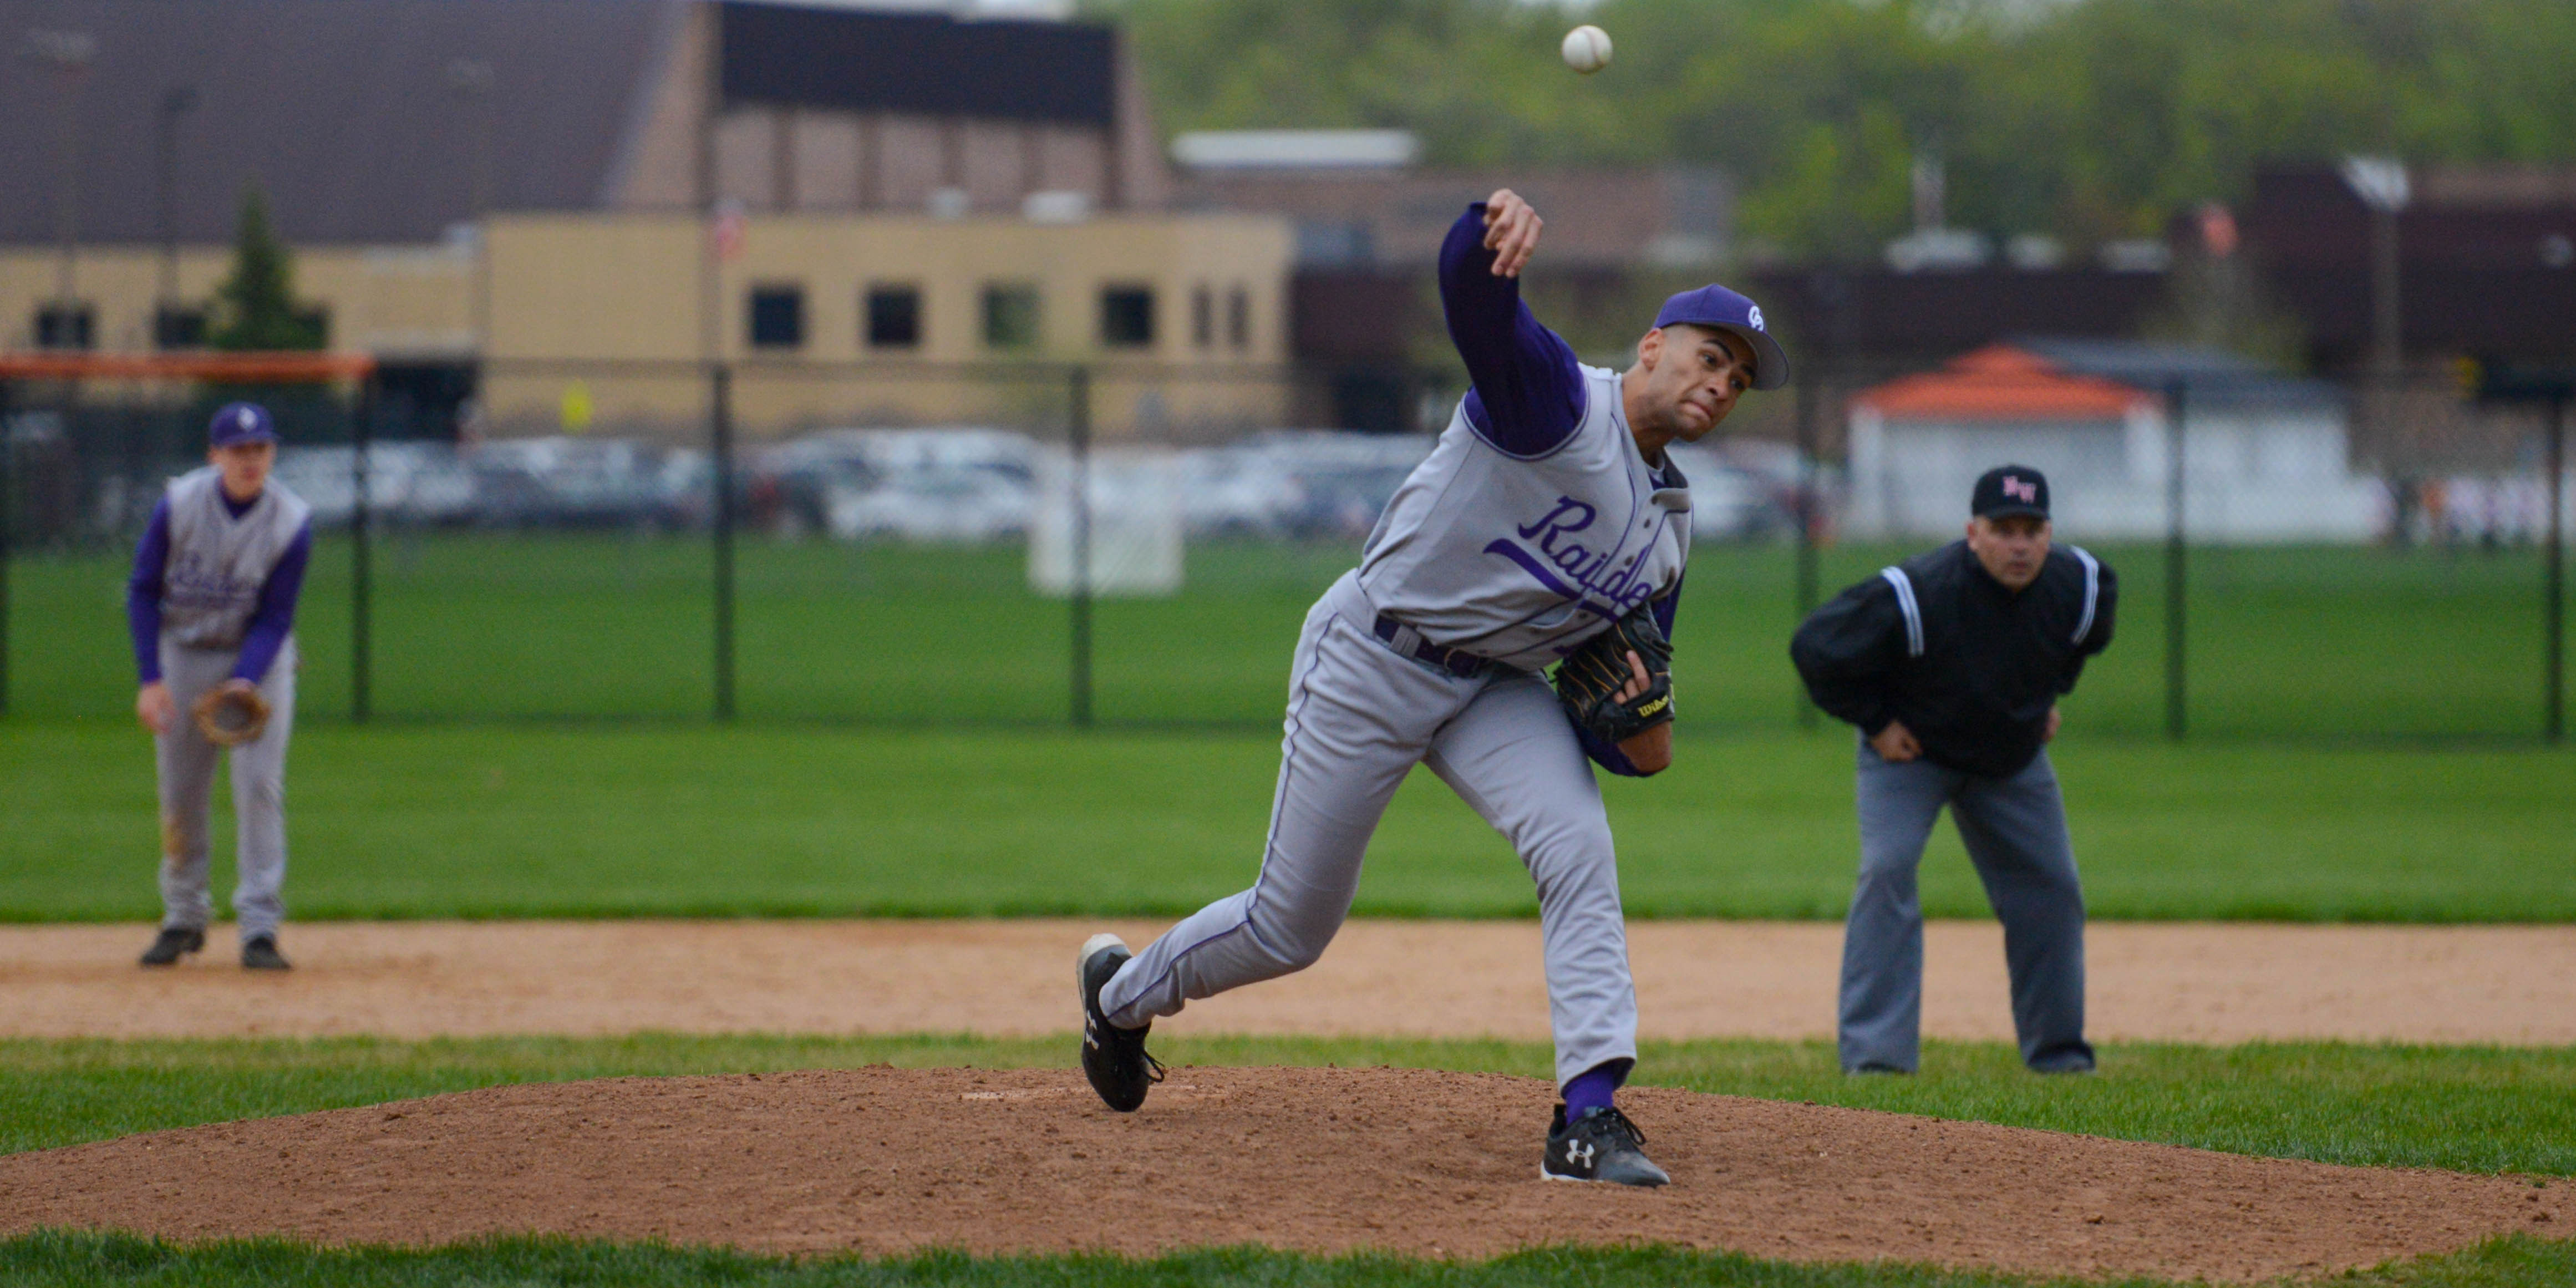 Cretin-Derham Hall pitcher Peter Udoibok (11) throws against White Bear Lake. The Raiders won 12-1 in five innings. Photo by Carter Jones, SportsEngine